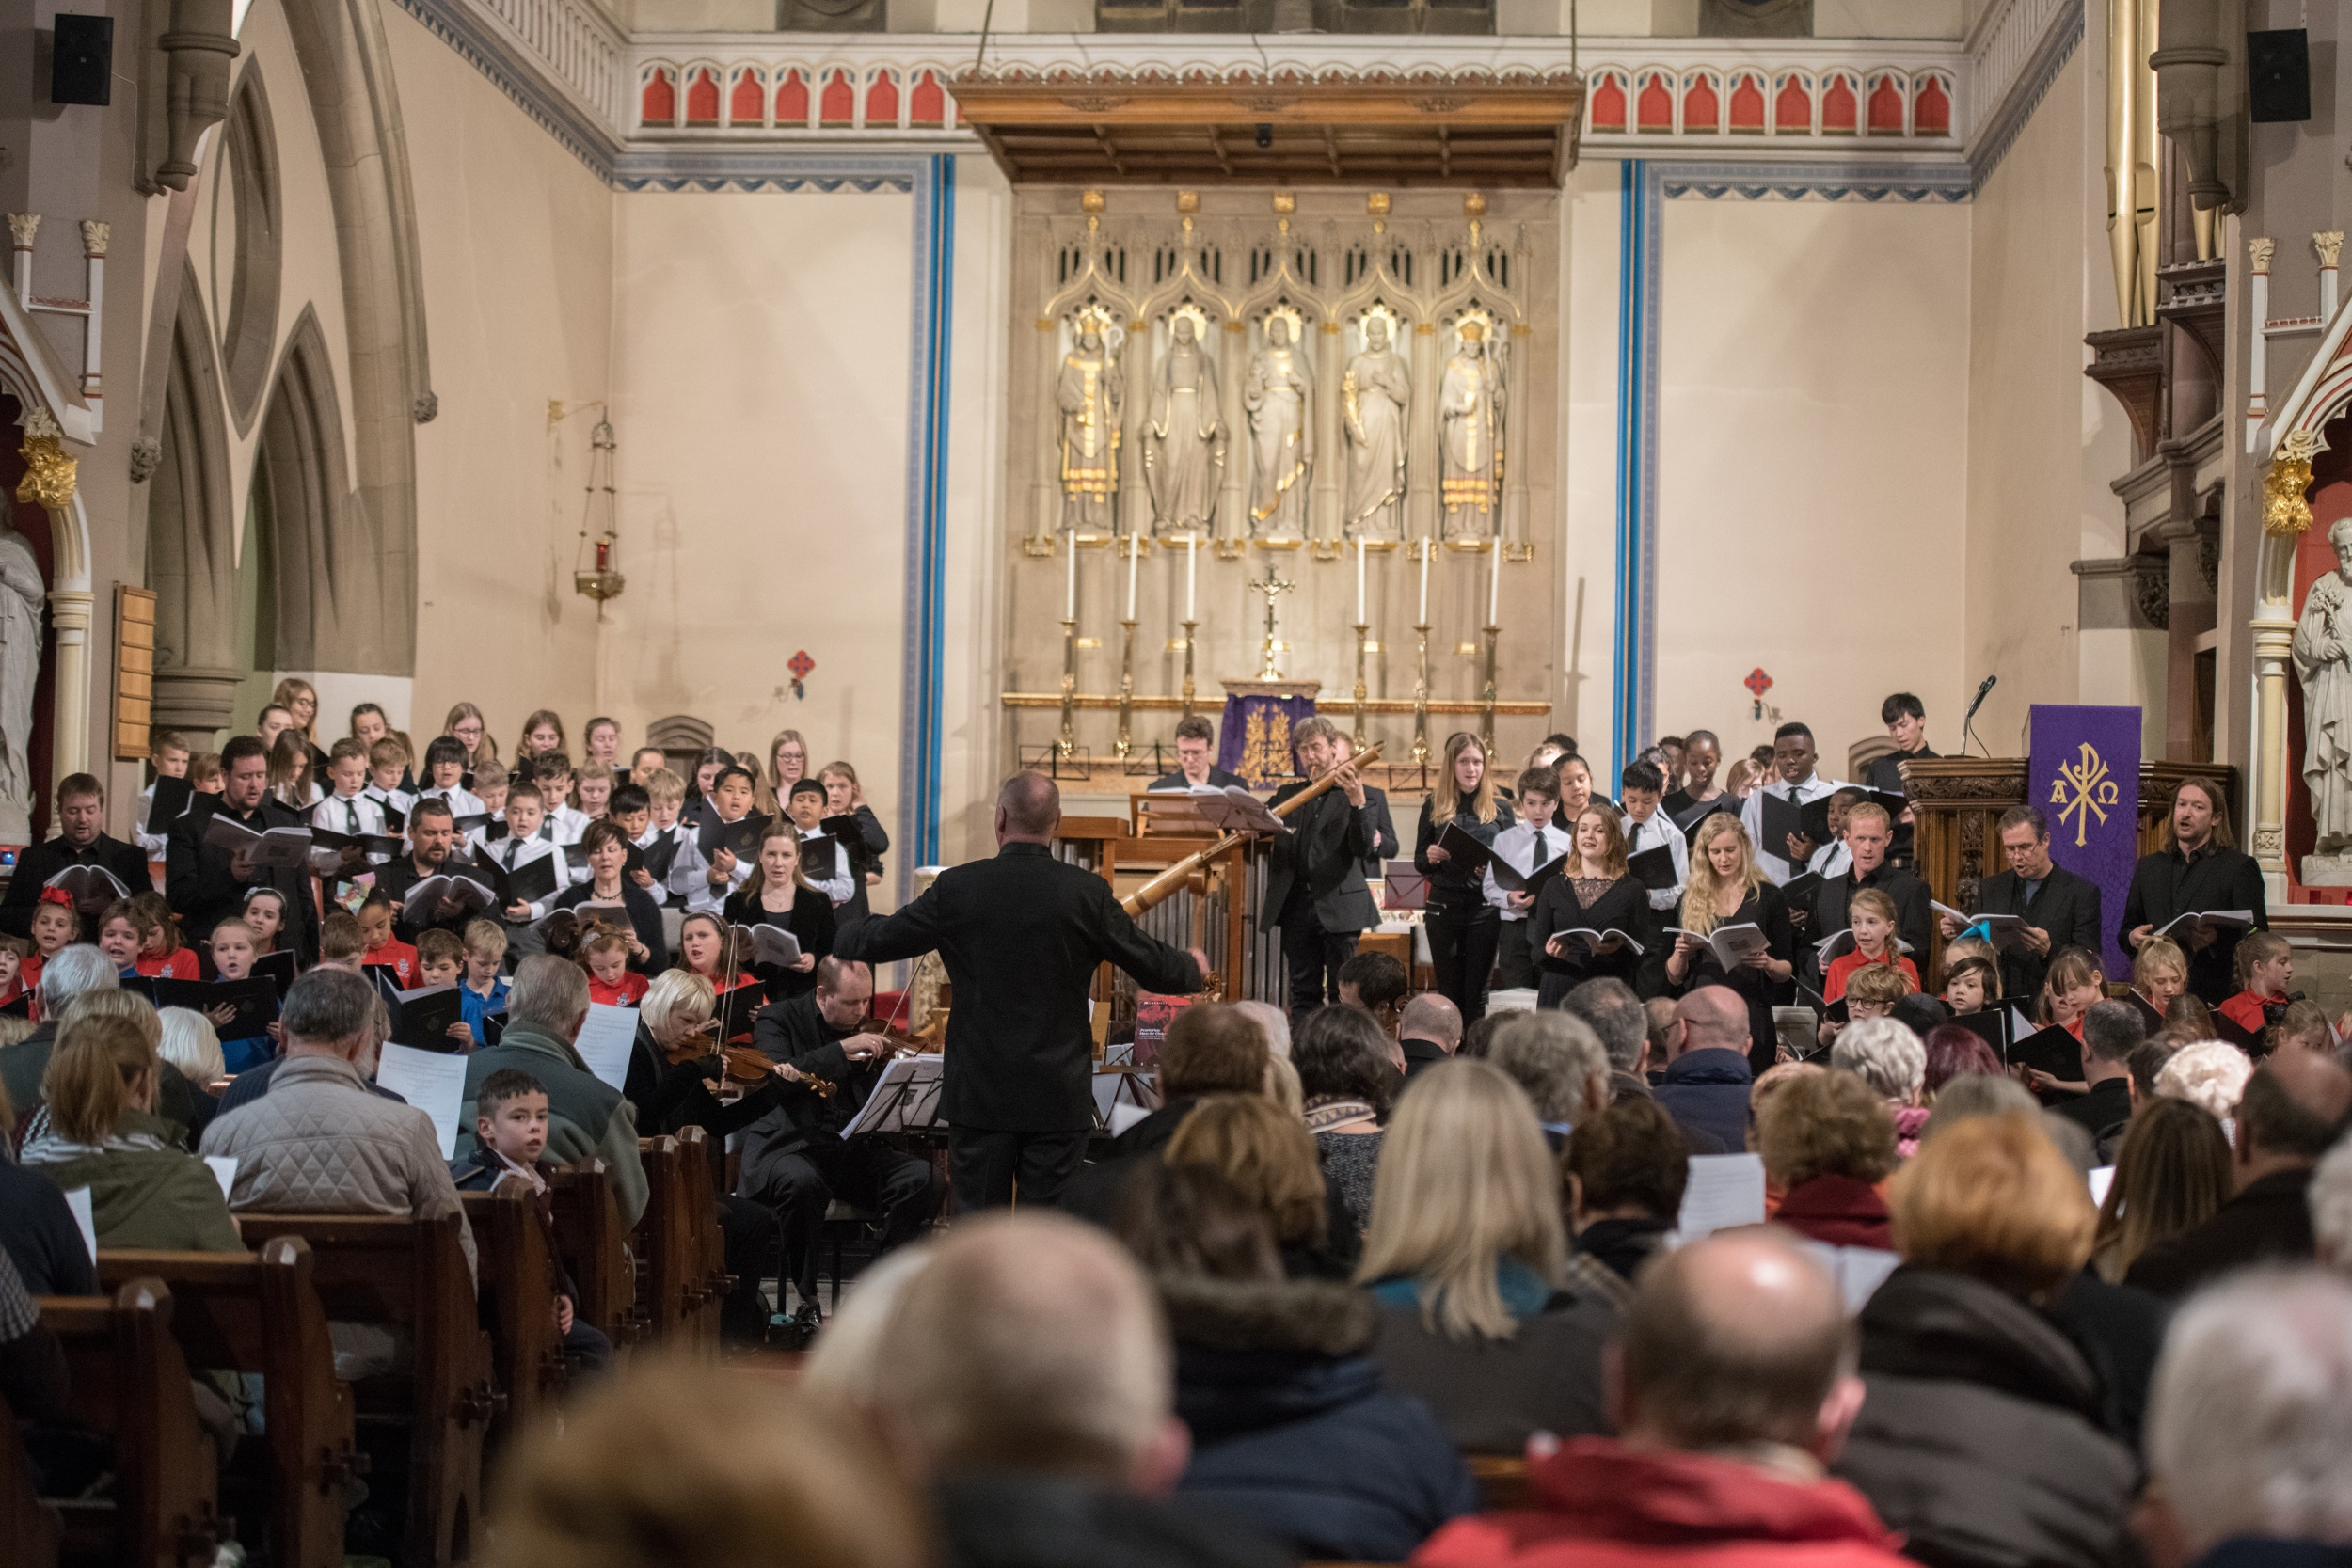 BCYC perform with the Gabrieli Consort and Players in St Joseph's Church